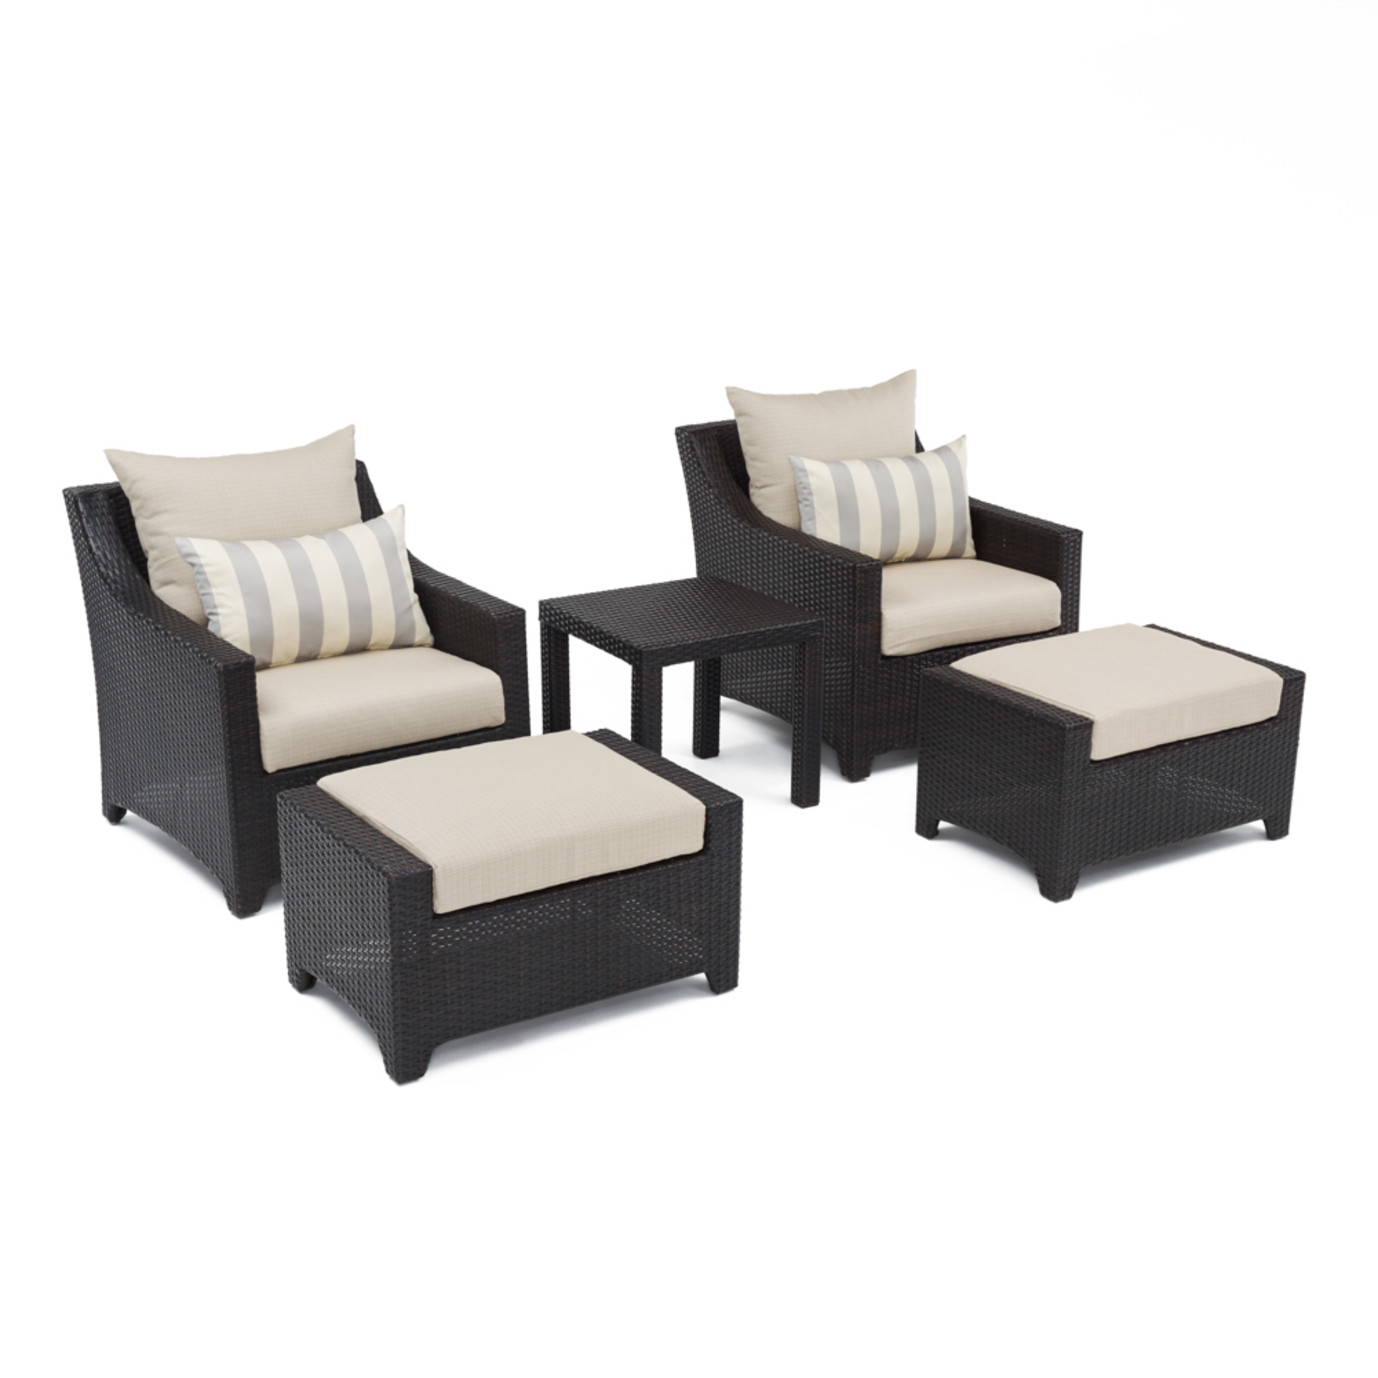 Deco™ 20 Piece Outdoor Estate Set - Slate Gray